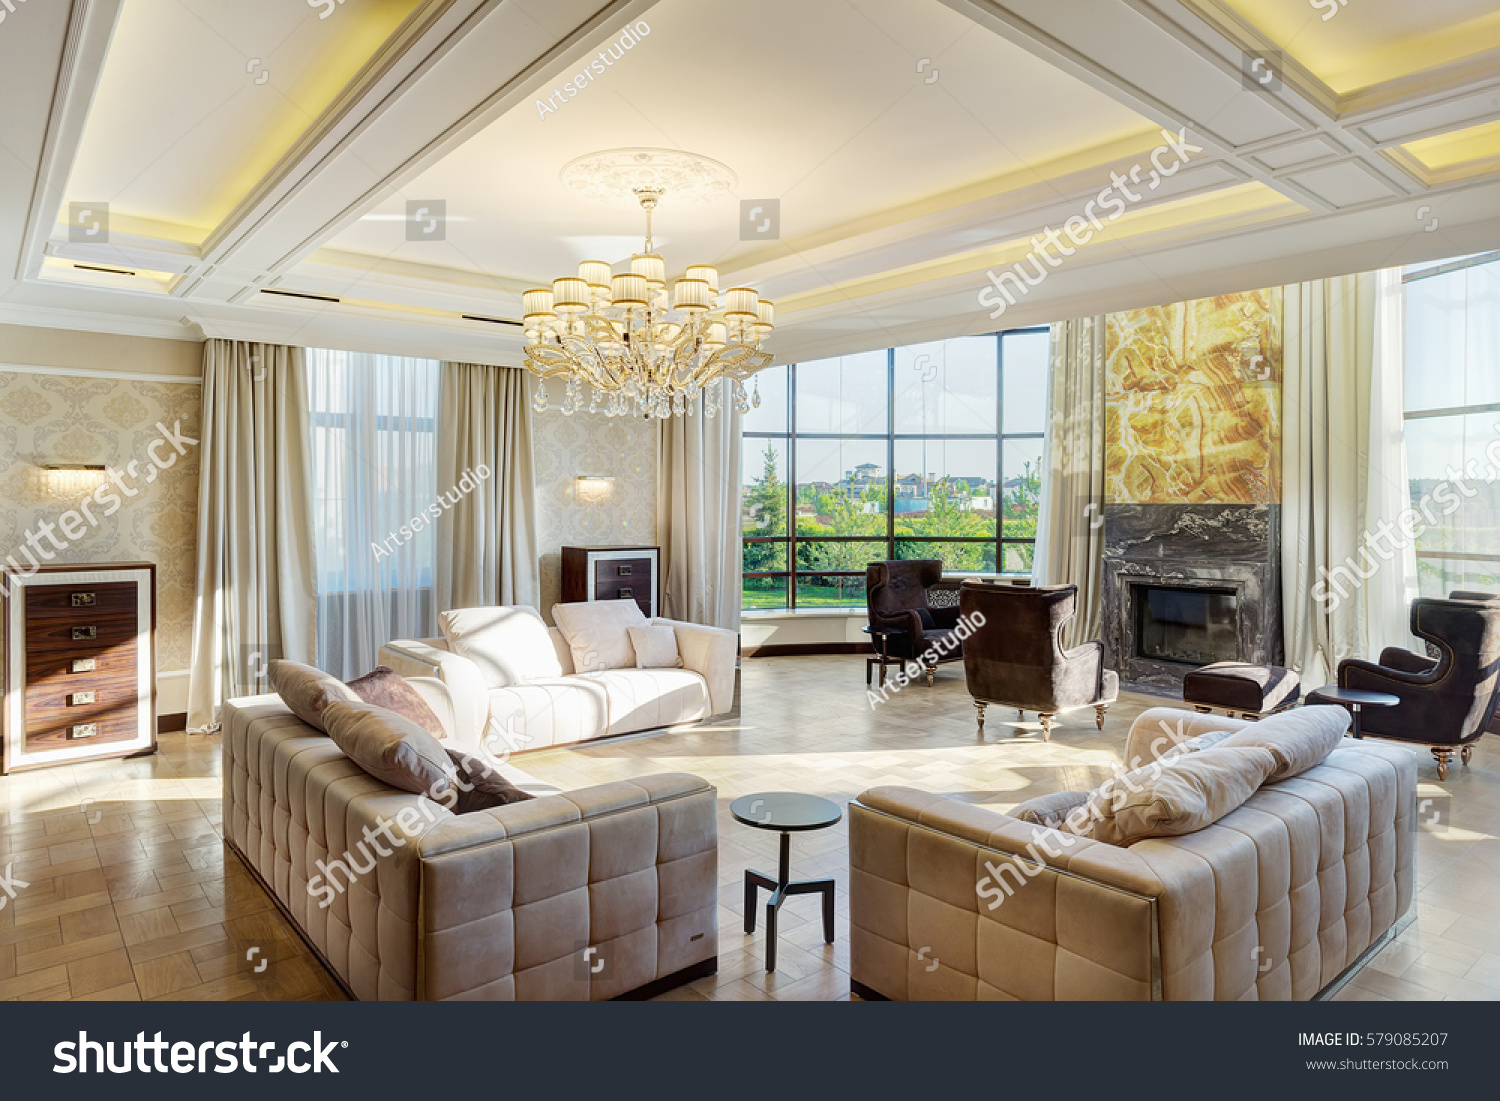 Luxury living room fireplace - Luxury Living Room With Big Windows With Panoramic View Of Garden And Crystal Chandelier In Center